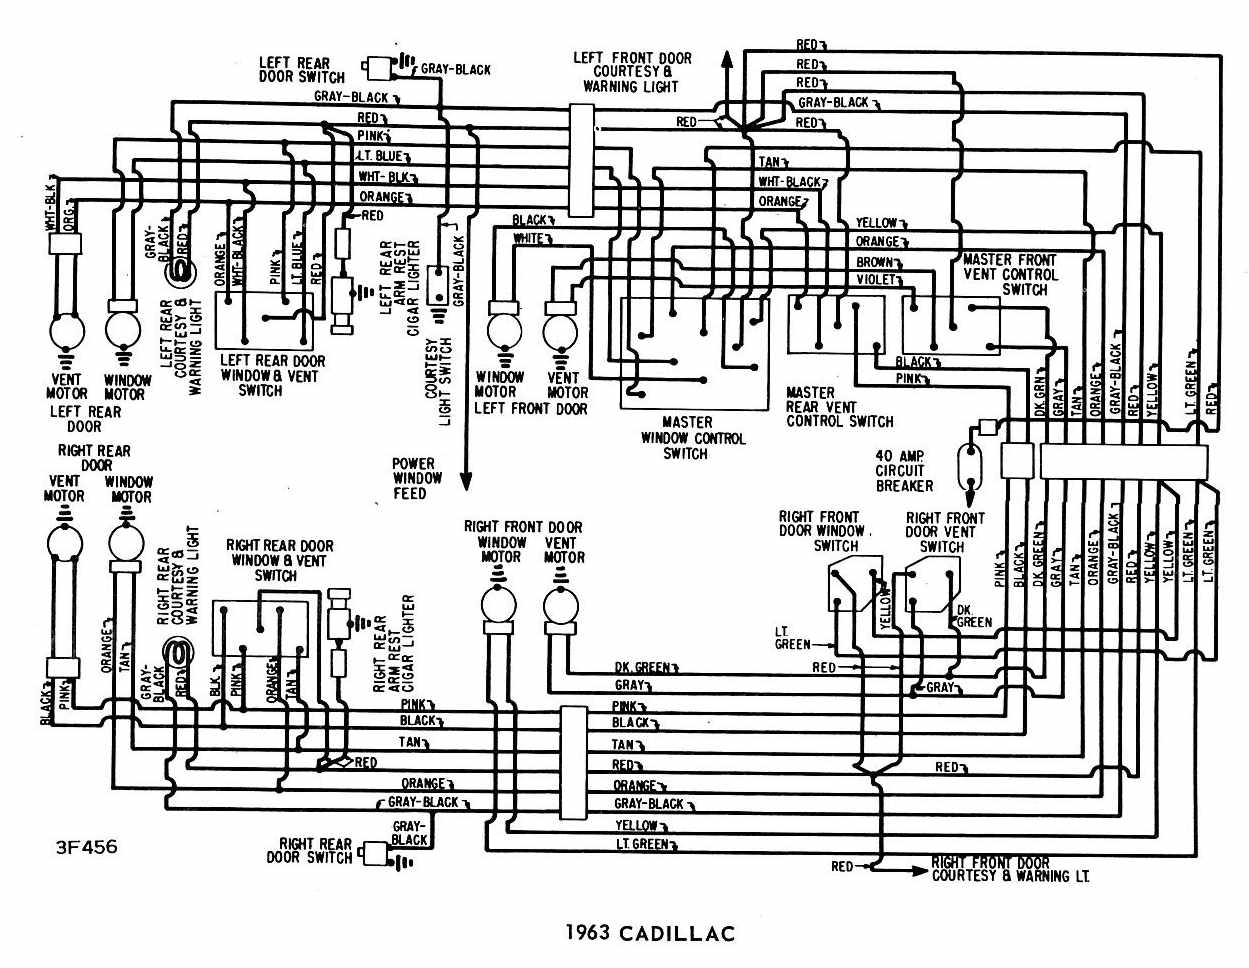 Cadillac    1963 Windows    Wiring       Diagram      All about    Wiring       Diagrams